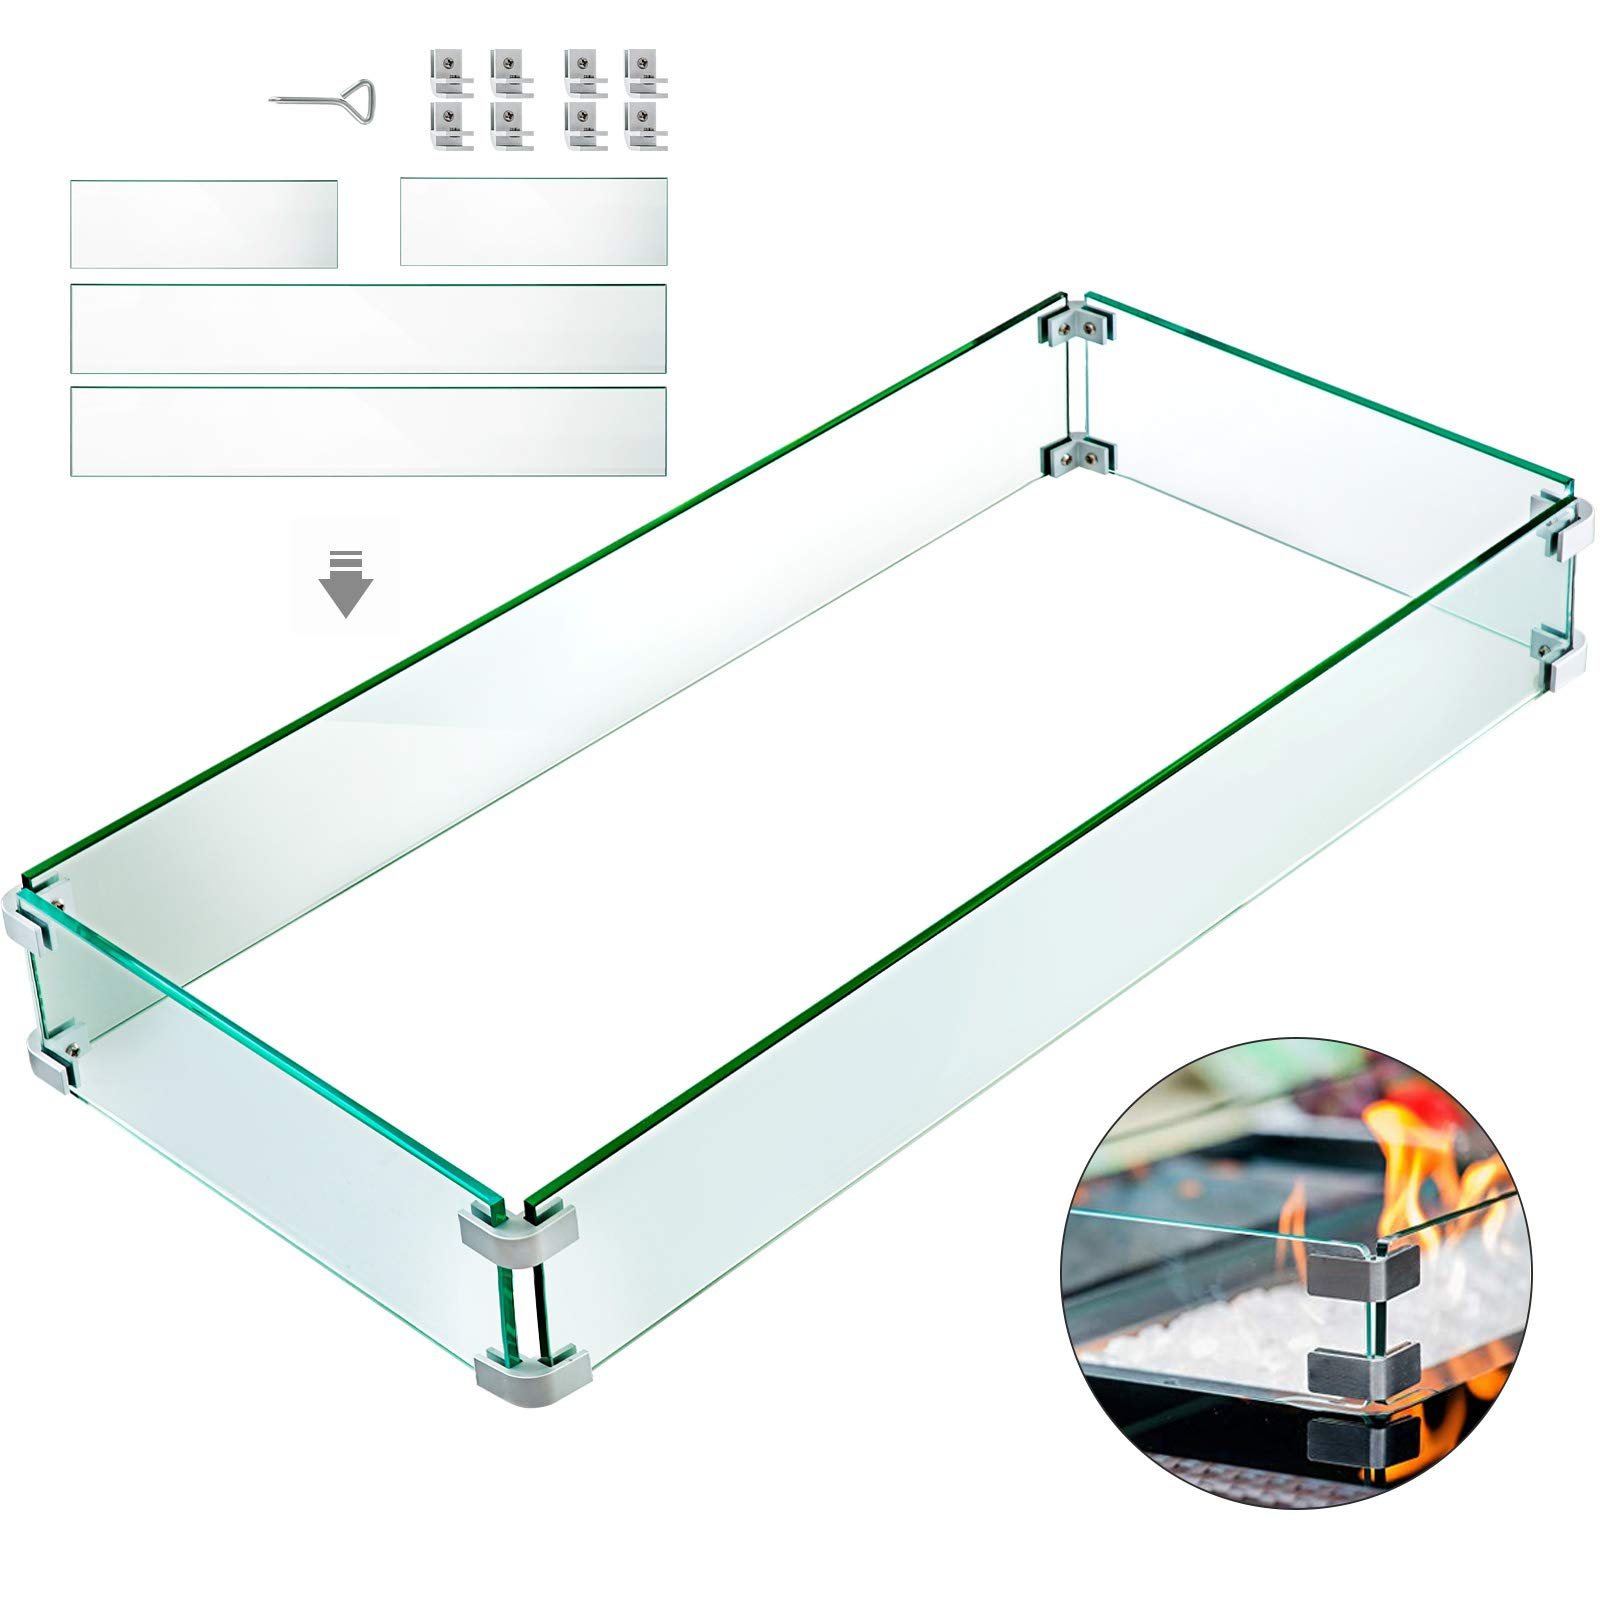 VBENLEM Fire Pit Wind Guard 41.8x18 Inch Fire Pit Tempered Glass 6mm Thickness Rectangular Wind Guard Fence by VBENLEM